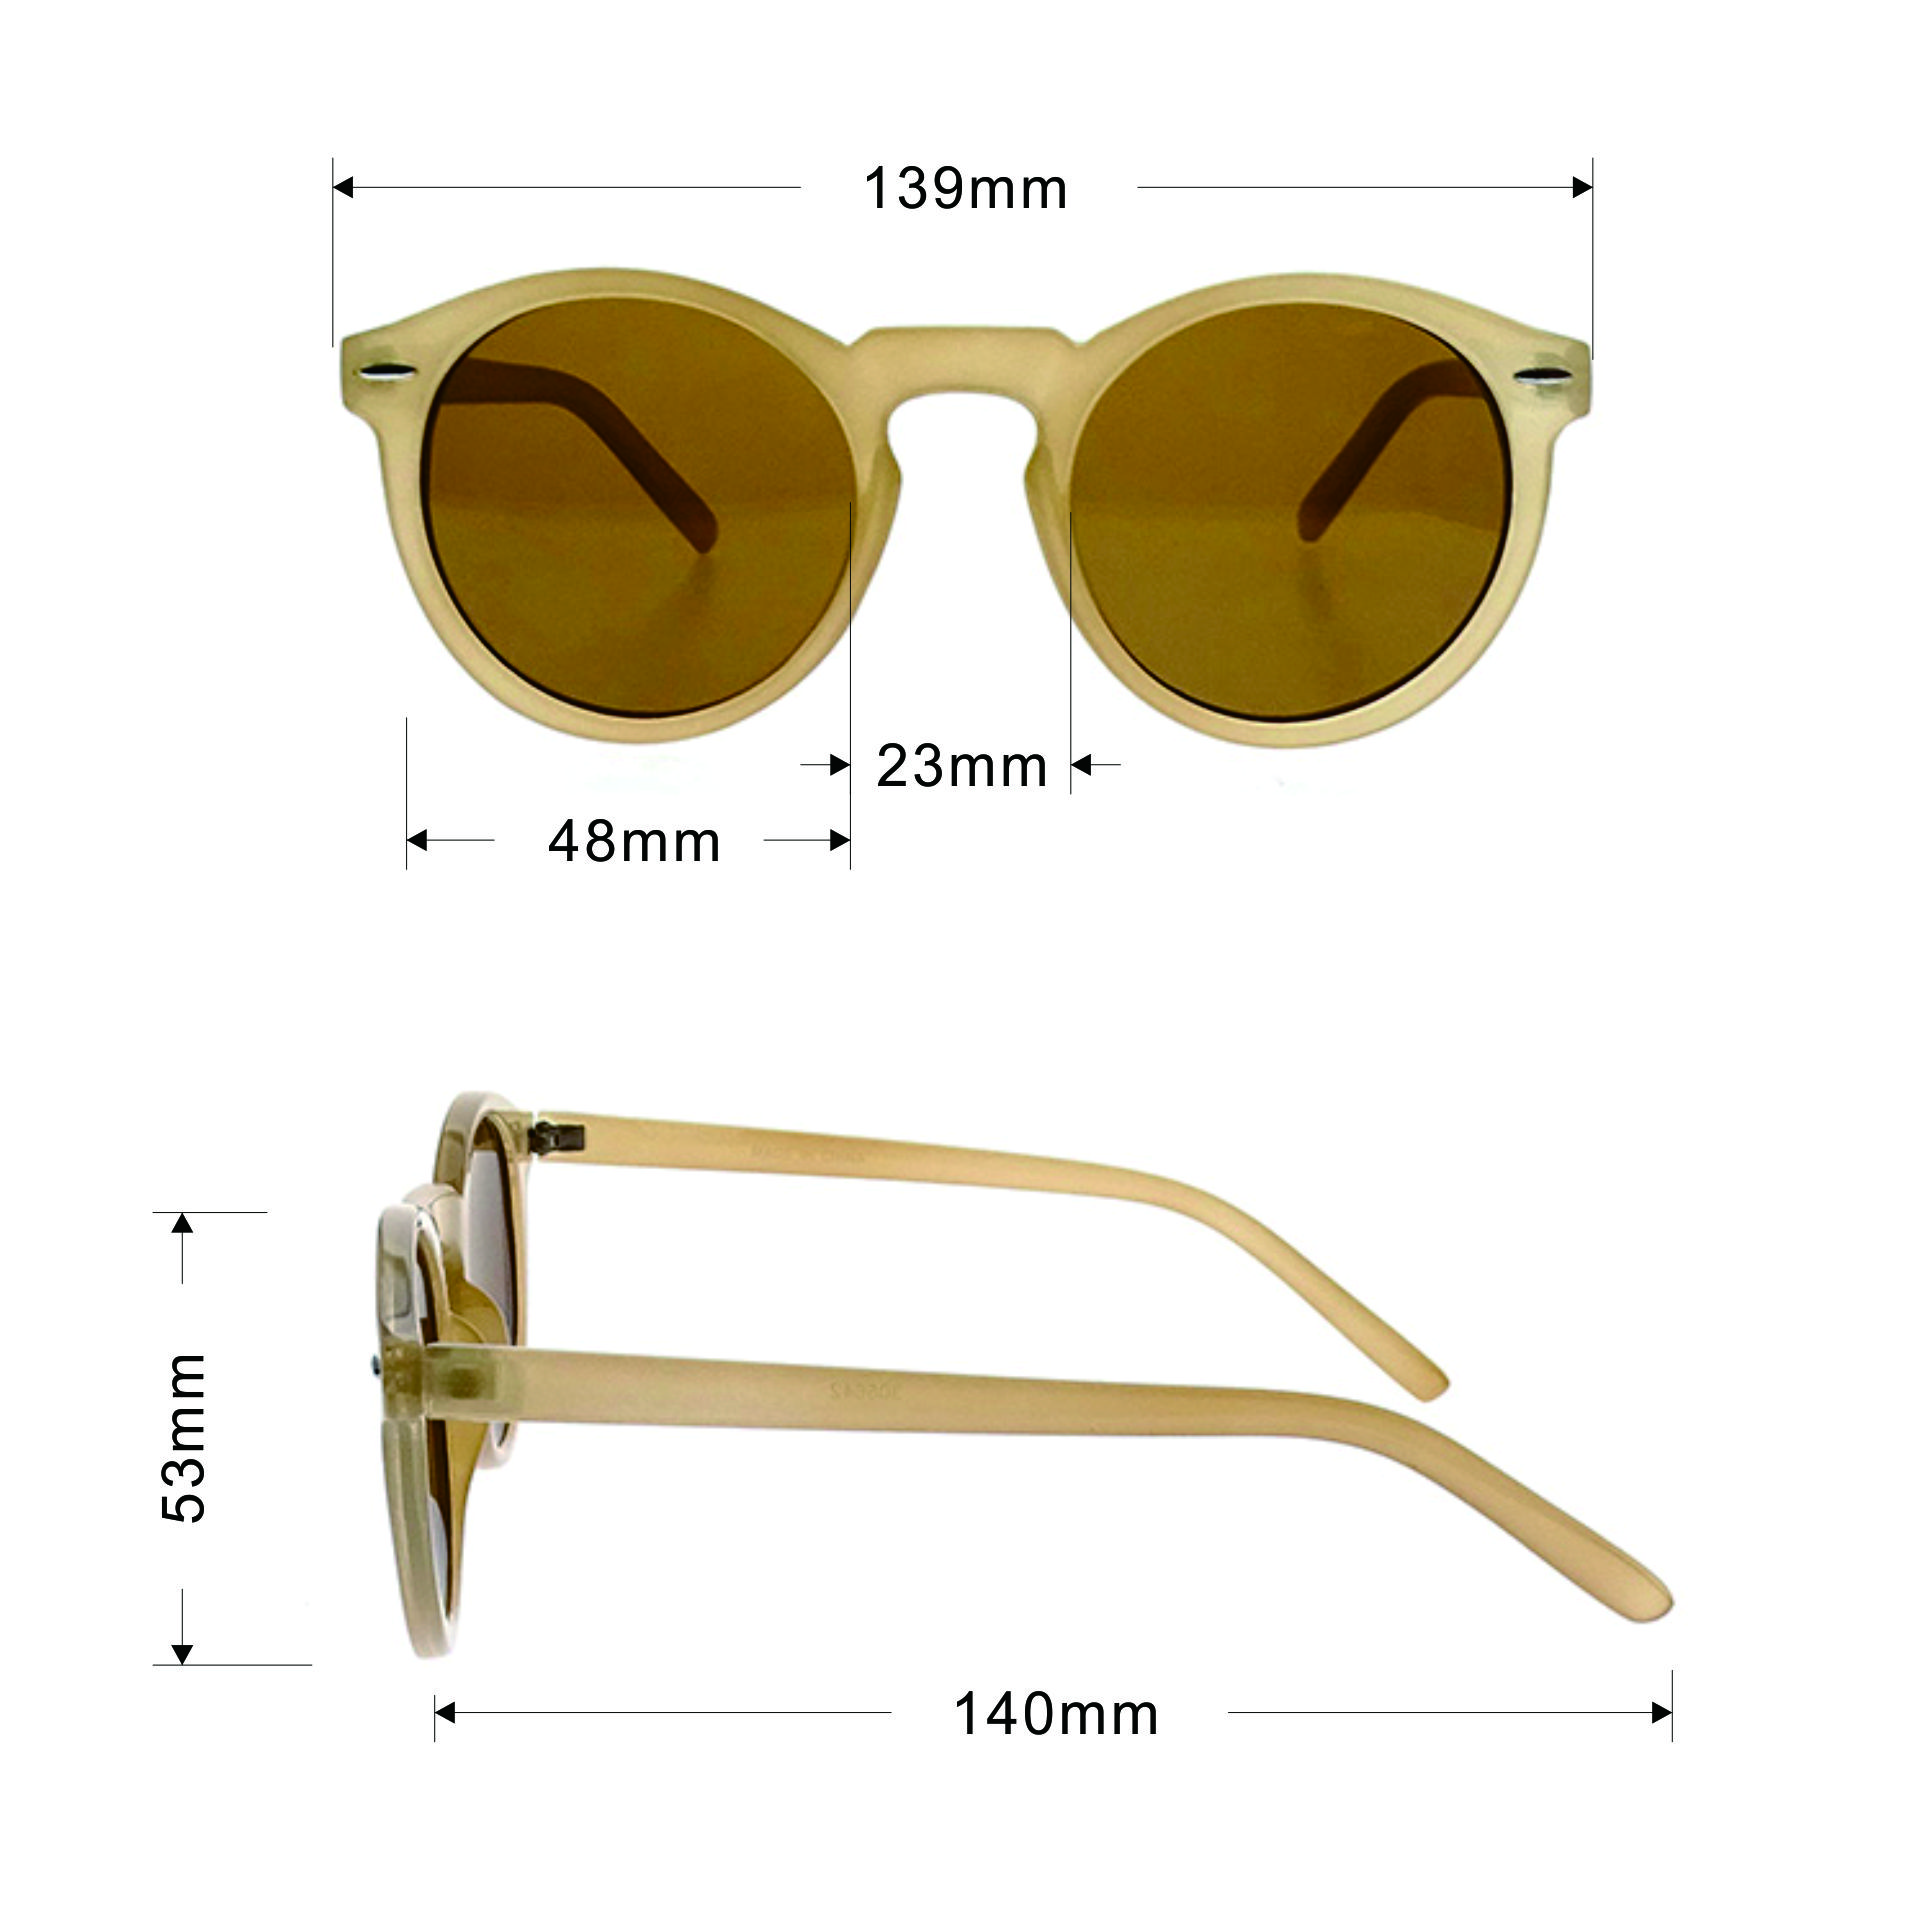 High-Quality Bown Yellow Color Vintage Style Round Frame Sunglasses LS-P850